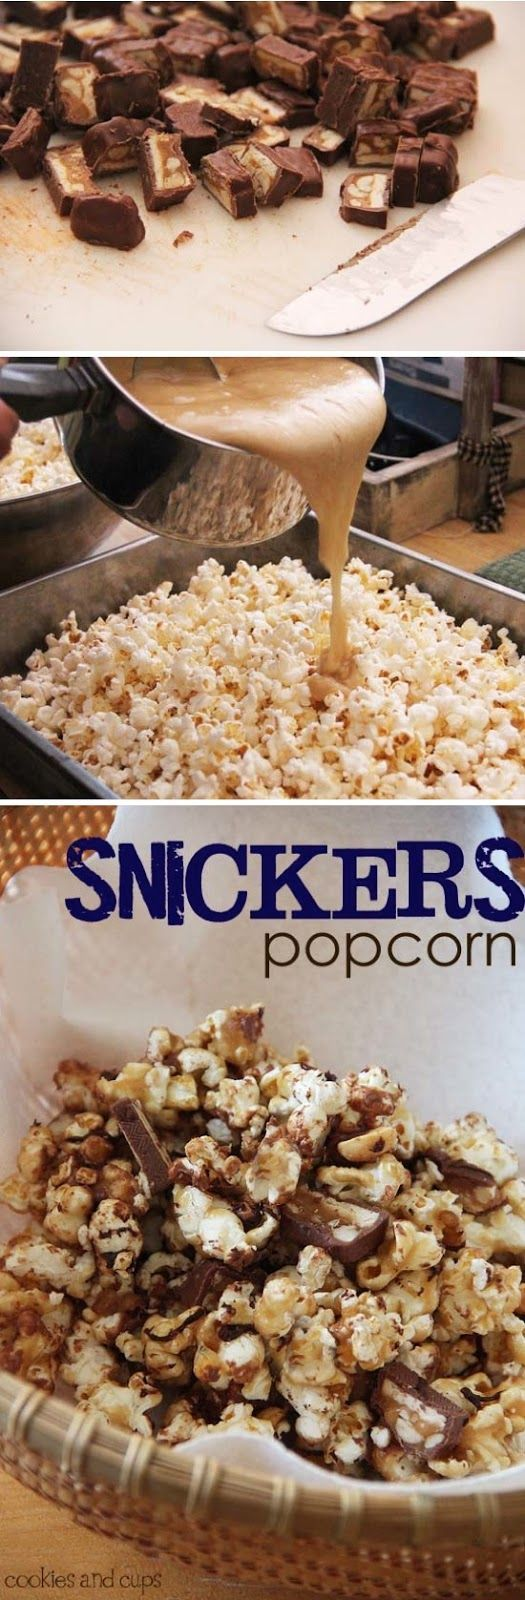 Must make this...mouth is watering just looking at the photos! Yum. Snickers popcorn: